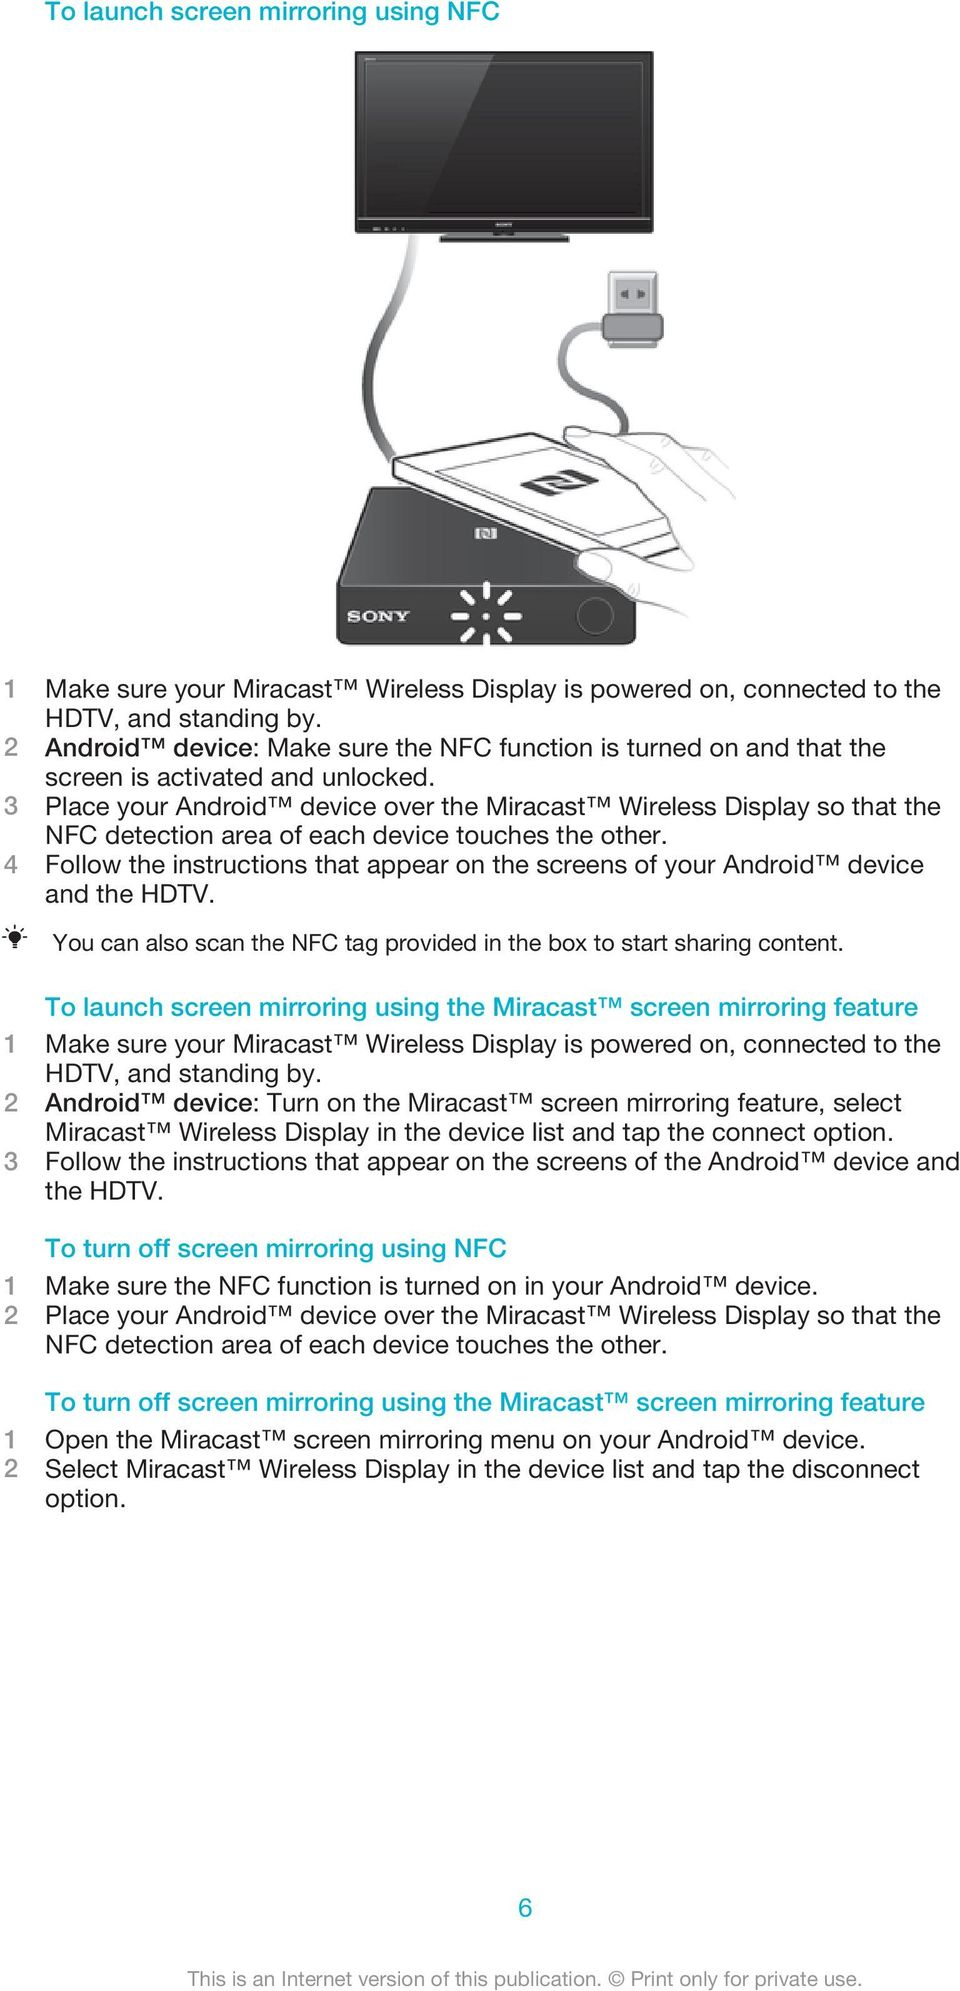 3 Place your Android device over the Miracast Wireless Display so that the NFC detection area of each device touches the other.